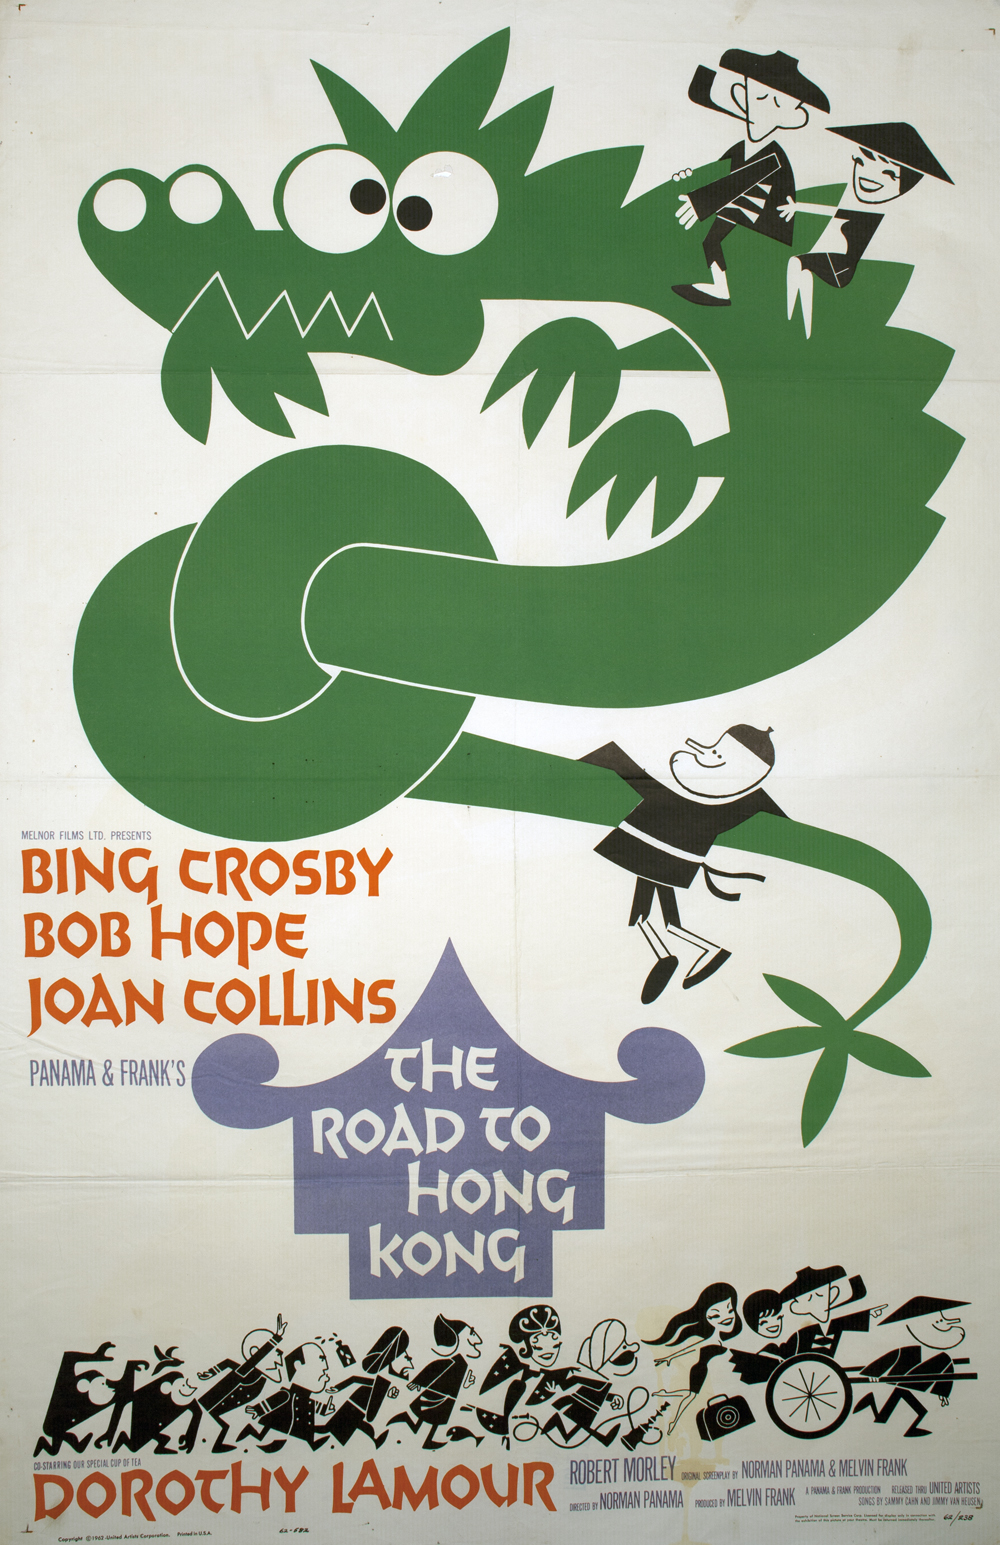 THE BING CROSBY NEWS ARCHIVE: GUEST REVIEWER: THE ROAD TO